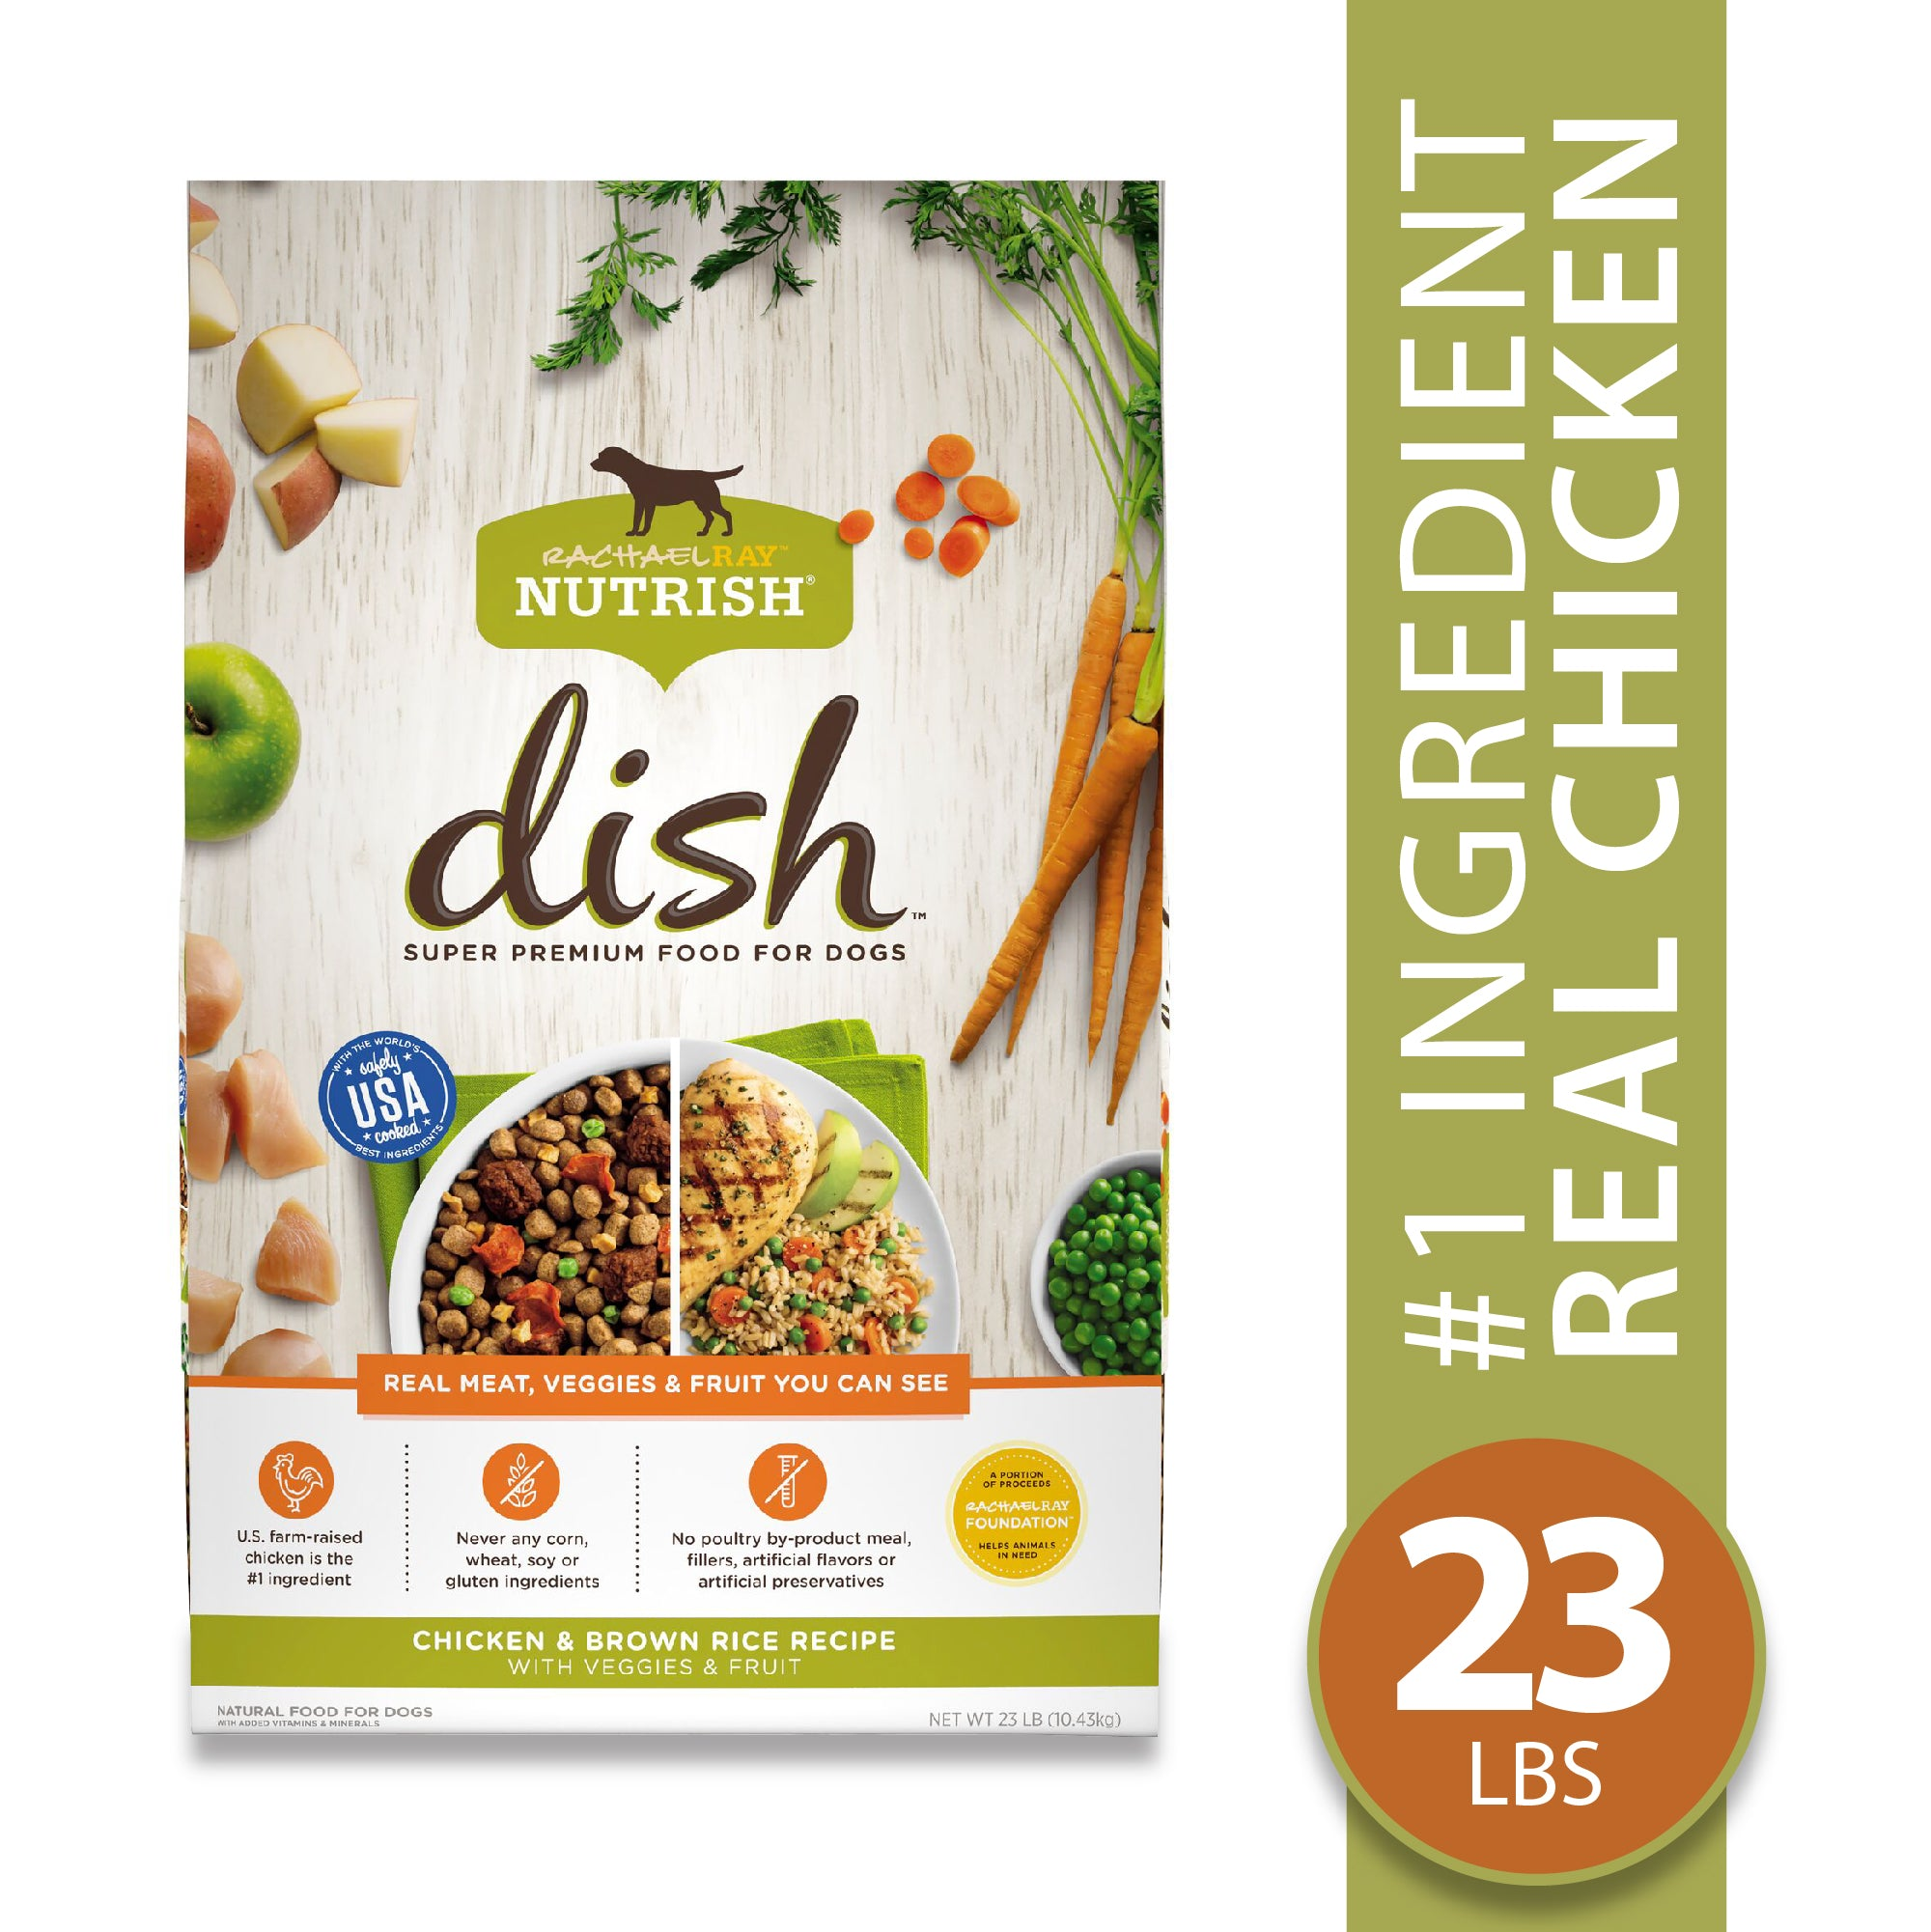 Rachael Ray Nutrish Dish Natural Premium Dry Dog Food, Chicken & Brown Rice Recipe With Veggies & Fruit, 23 Lbs